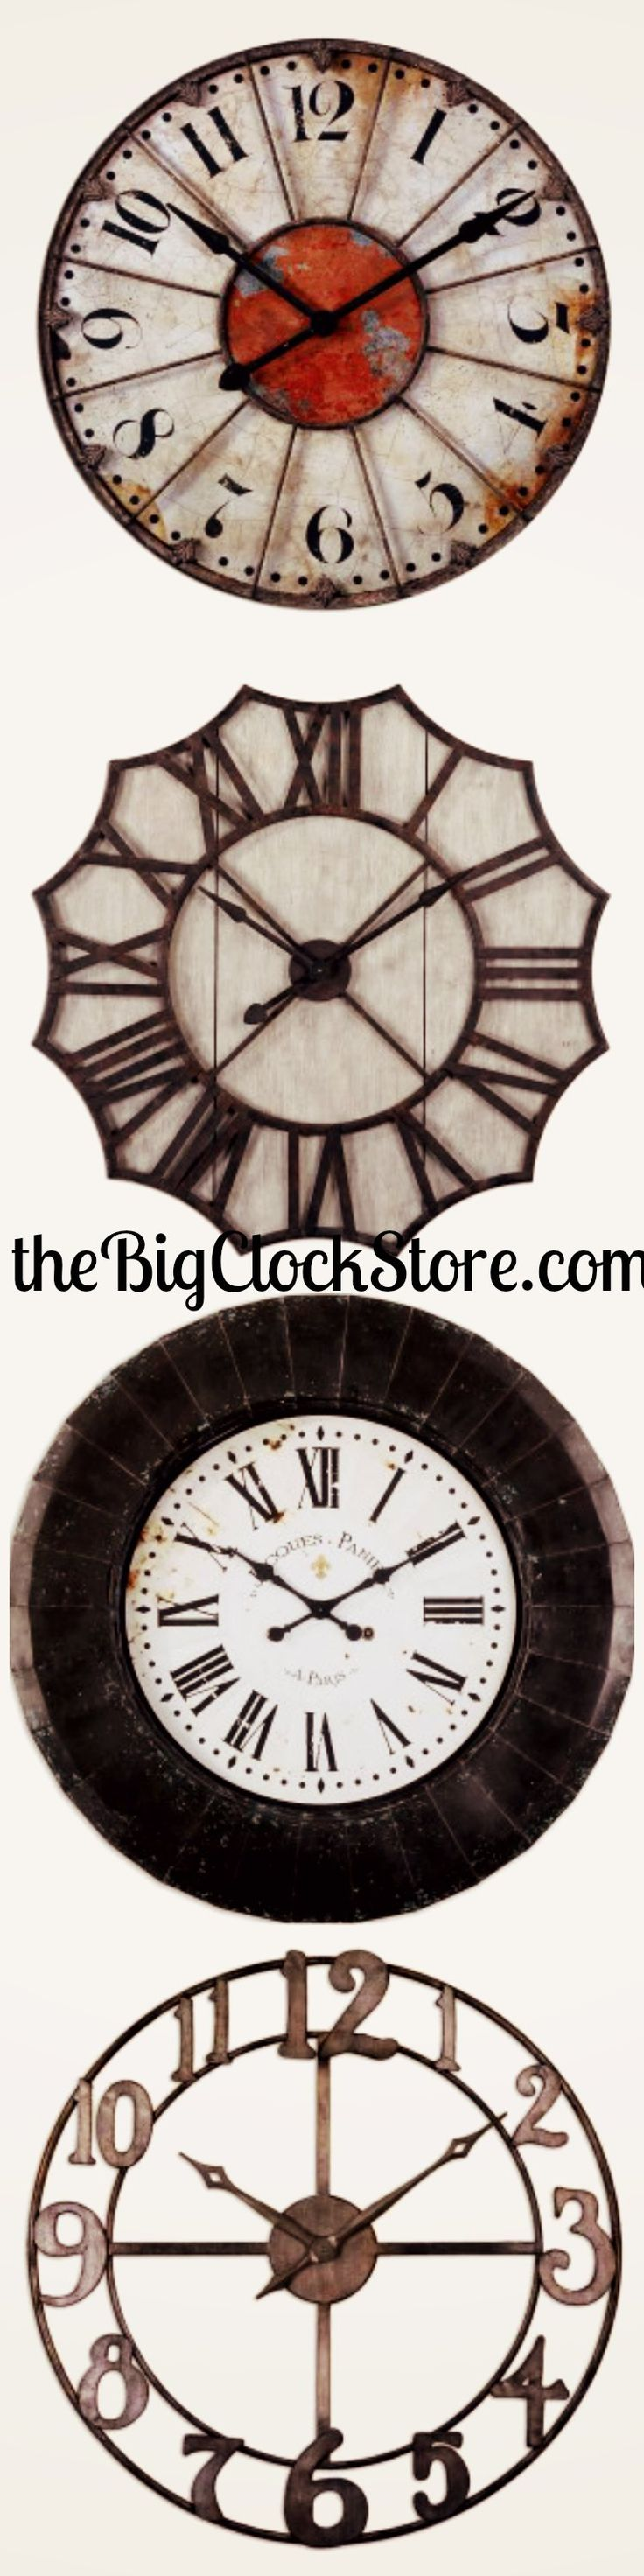 Am americana country wall clocks - Make A Statement With A White Wall Clock Order From The Big Clock Store Now